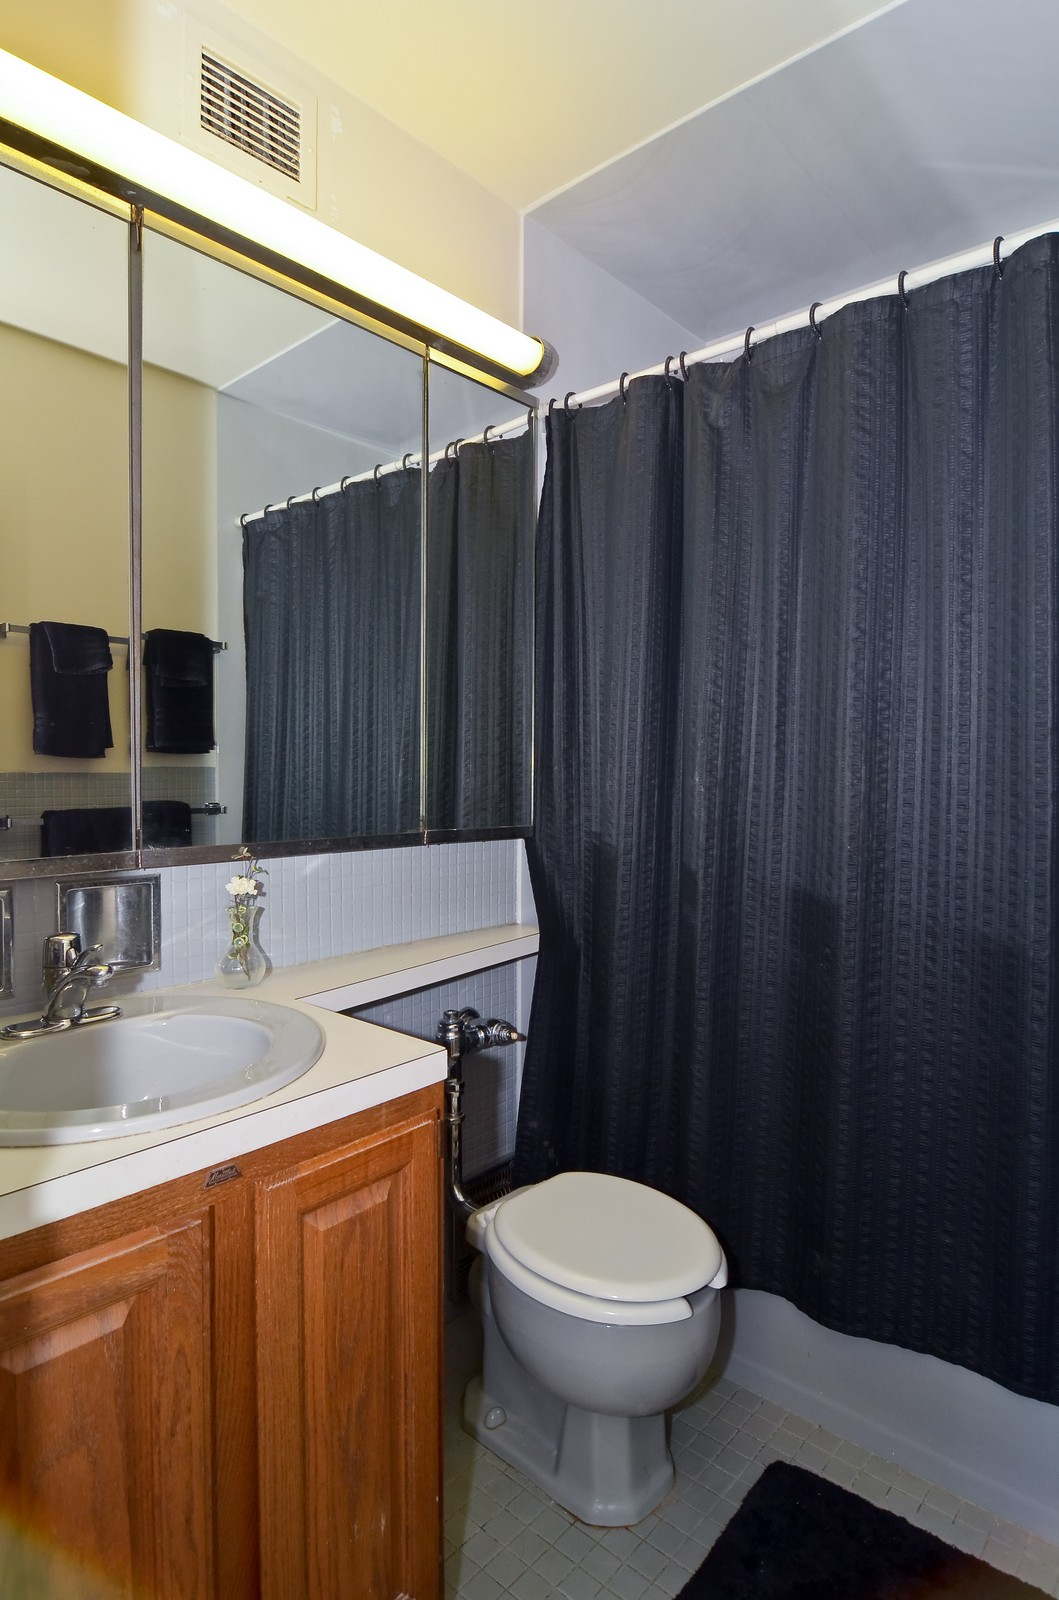 Real Estate Photography - 1550 N Lakeshore Dr, Unit 2E, Chicago, IL, 60610 - Bathroom